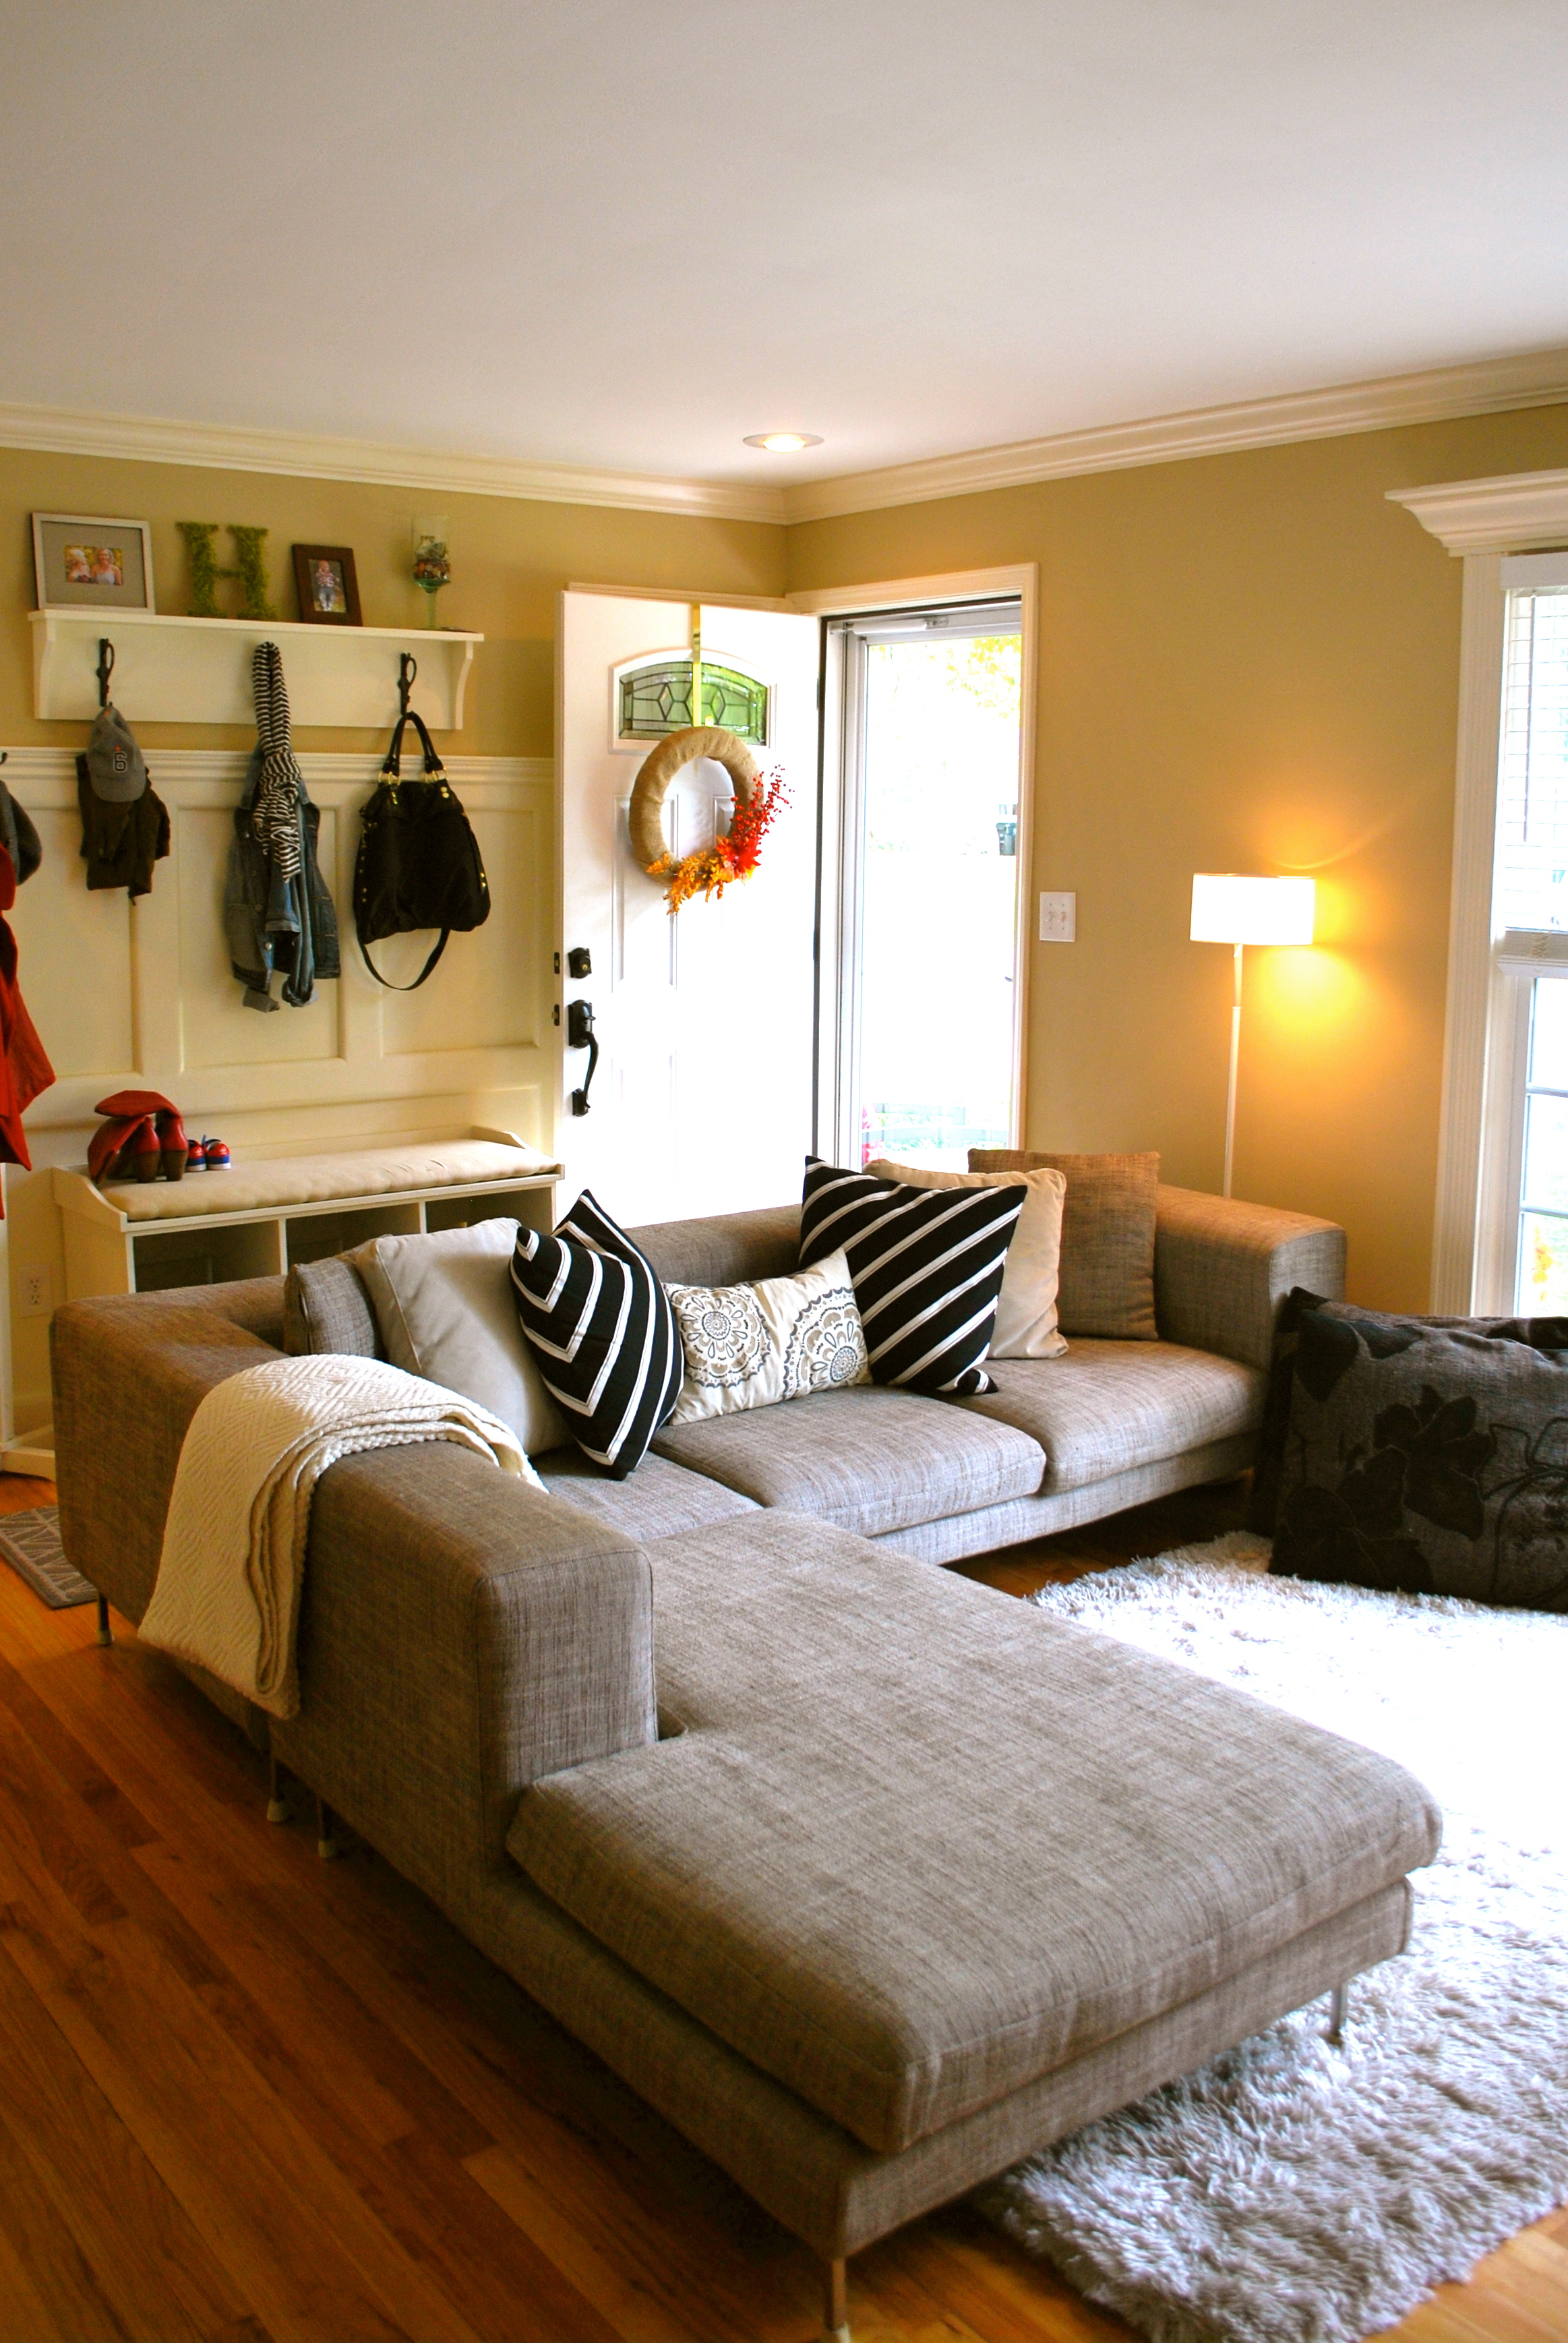 Living Room Design The Suburban Urbanist